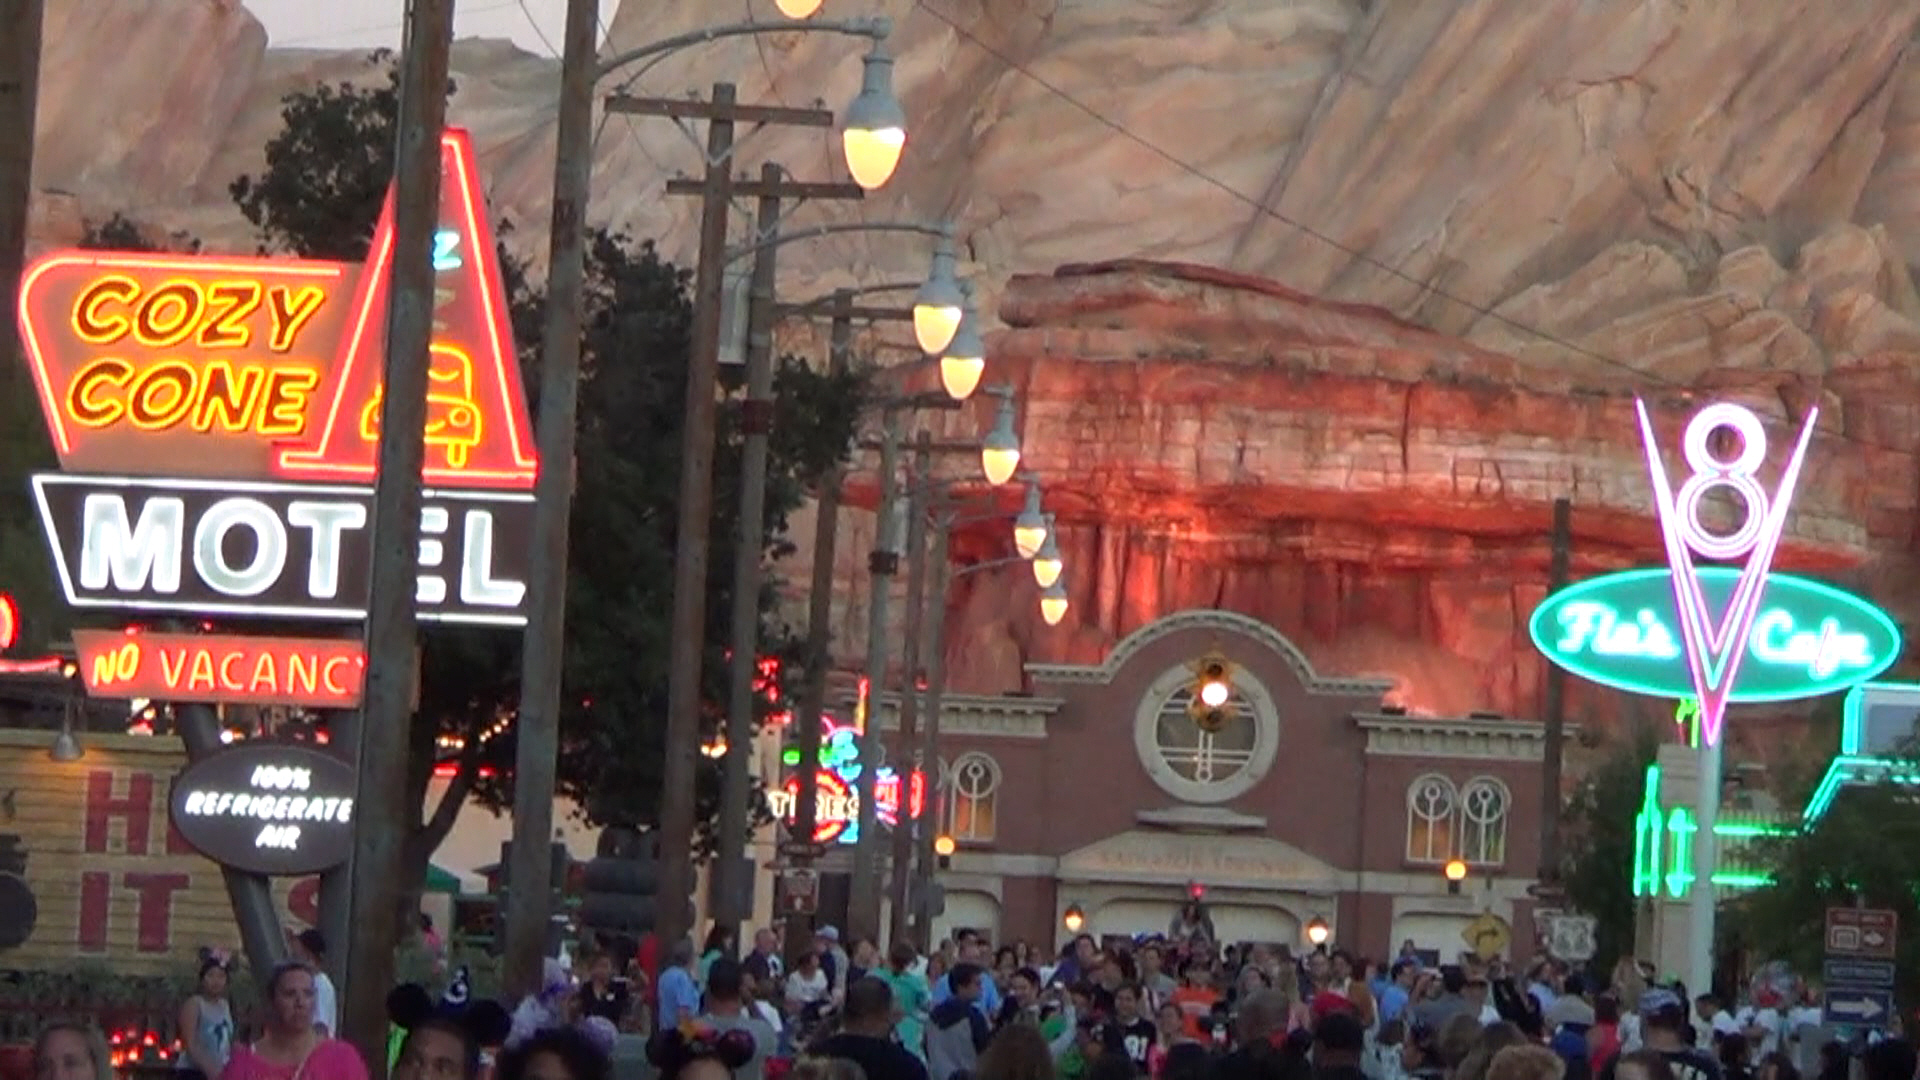 05 Disneyland - Lights on Route 66 in Radiator Springs turn on each night at exactly the time of sun set